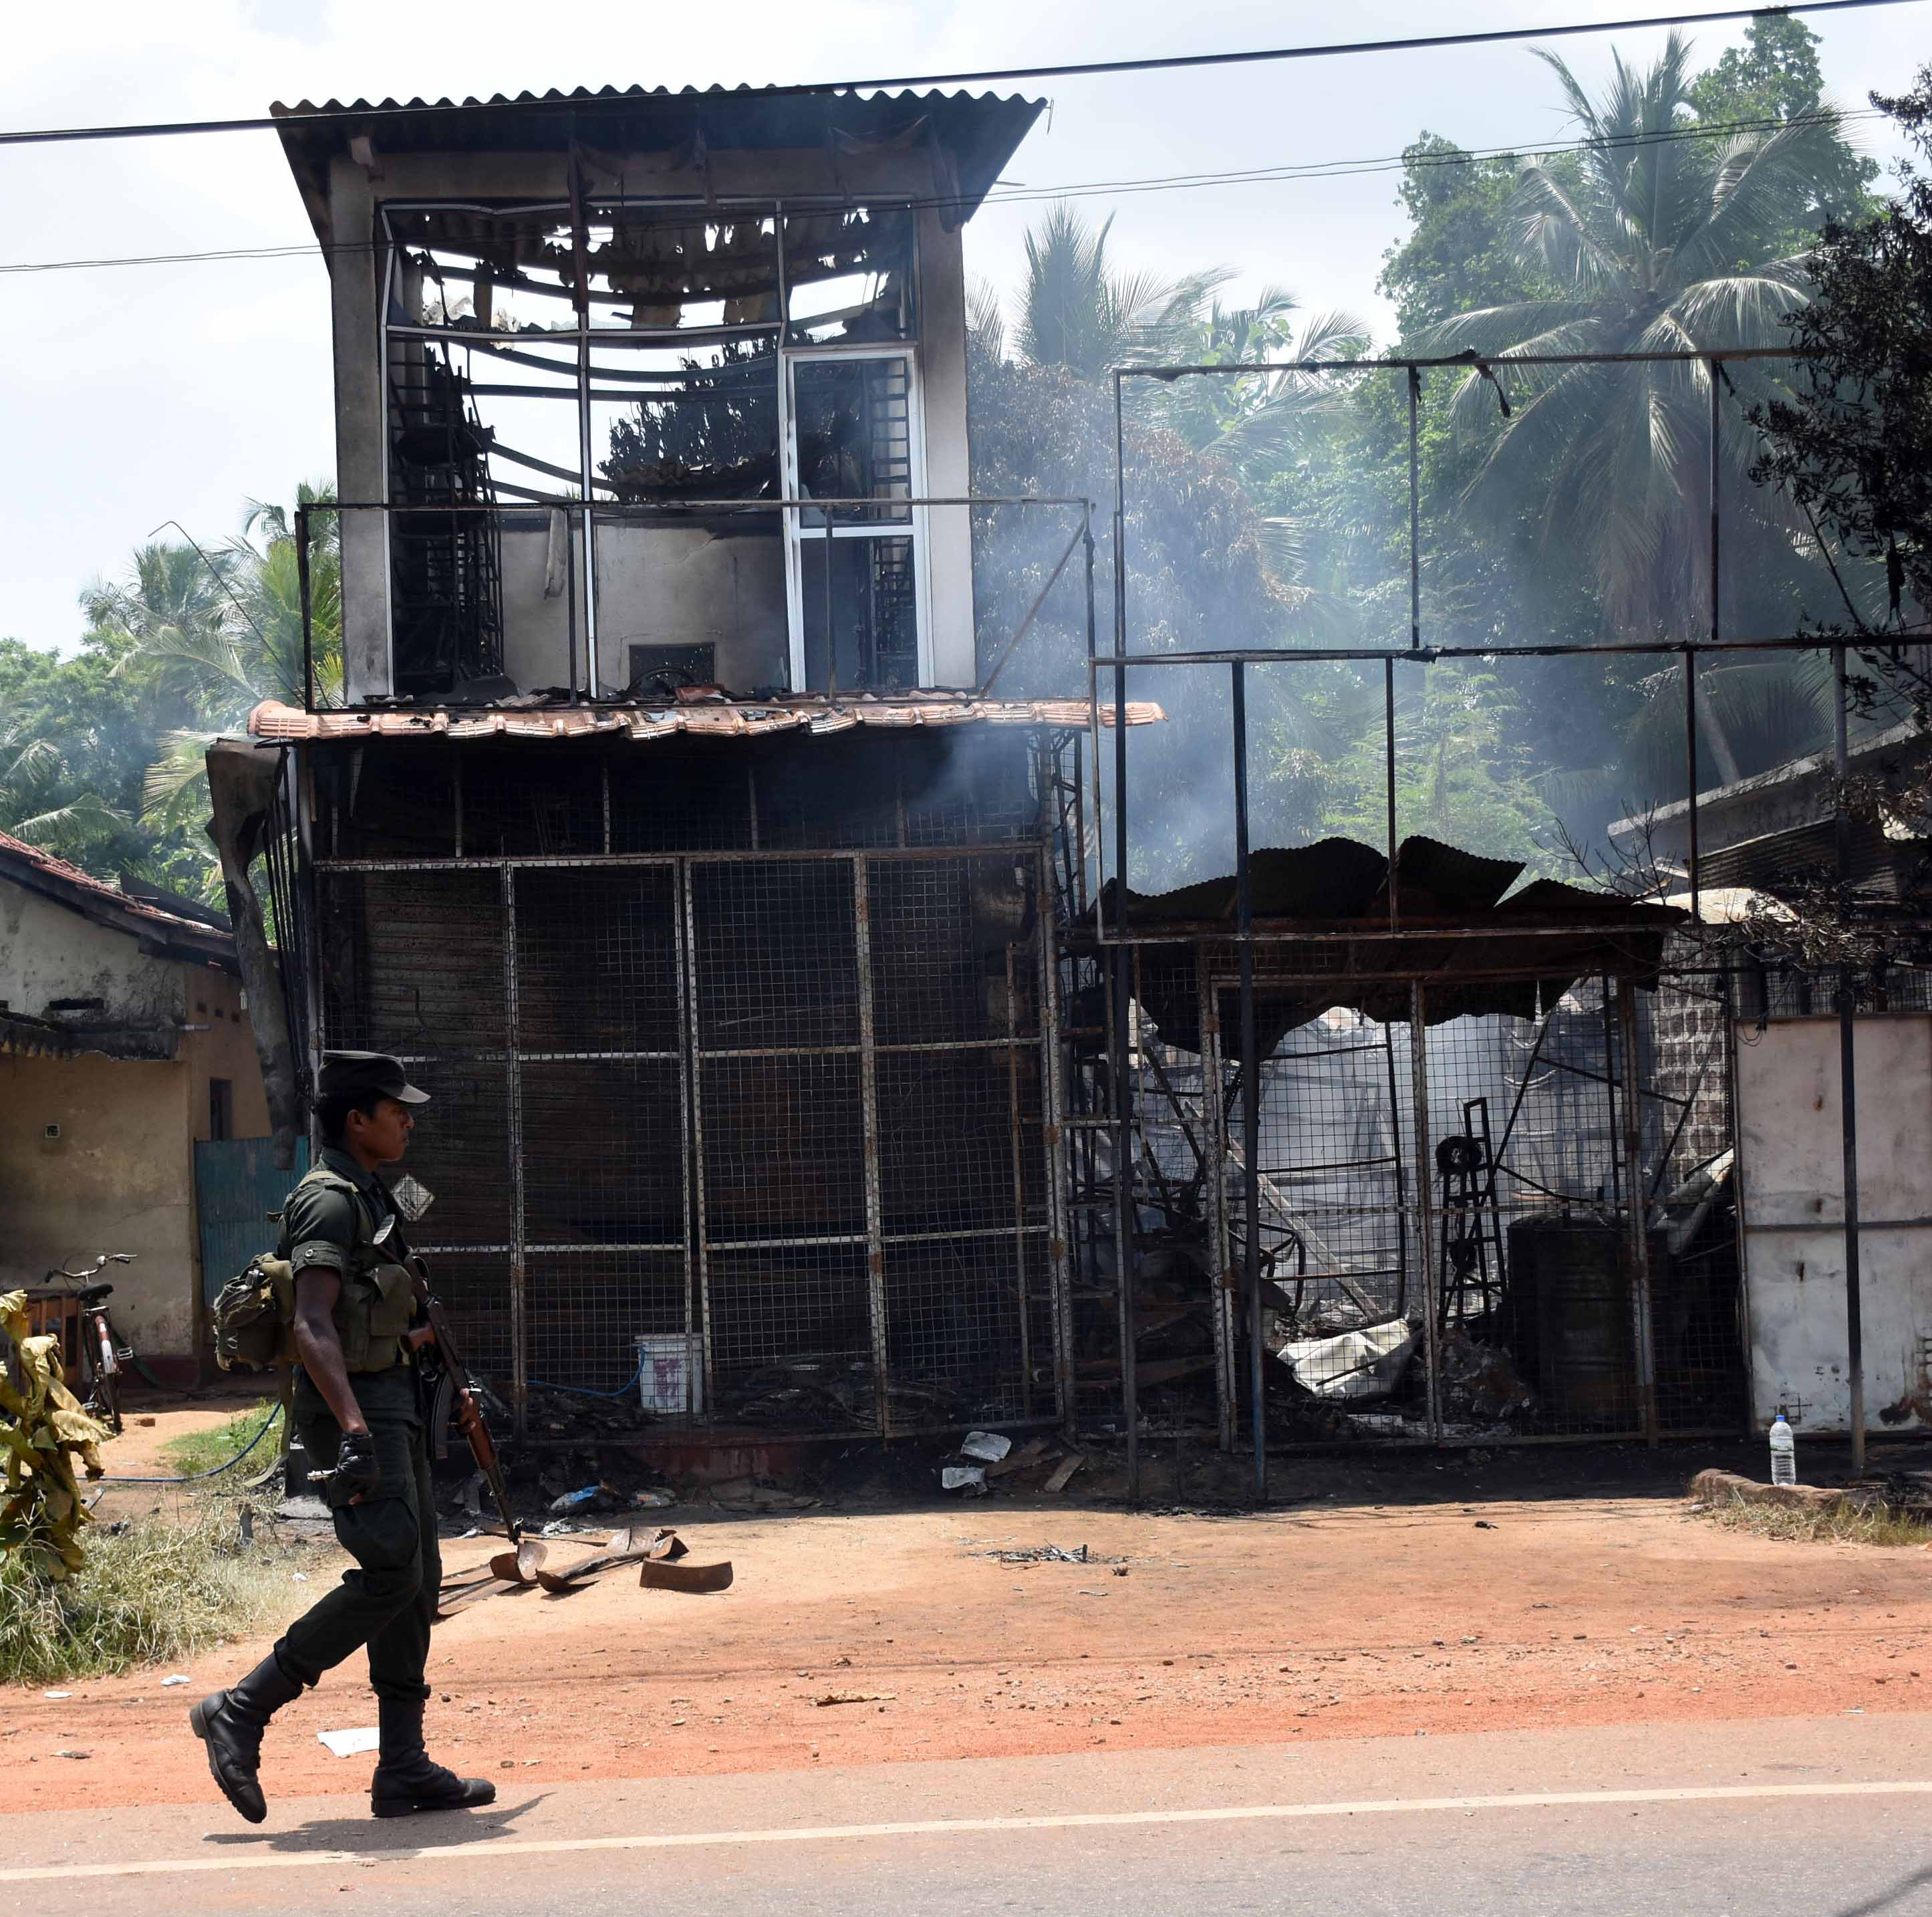 Violence in parts of Sri Lanka - android - Phones Developers -64685f64ef674f40a712b909b2f8a2d9